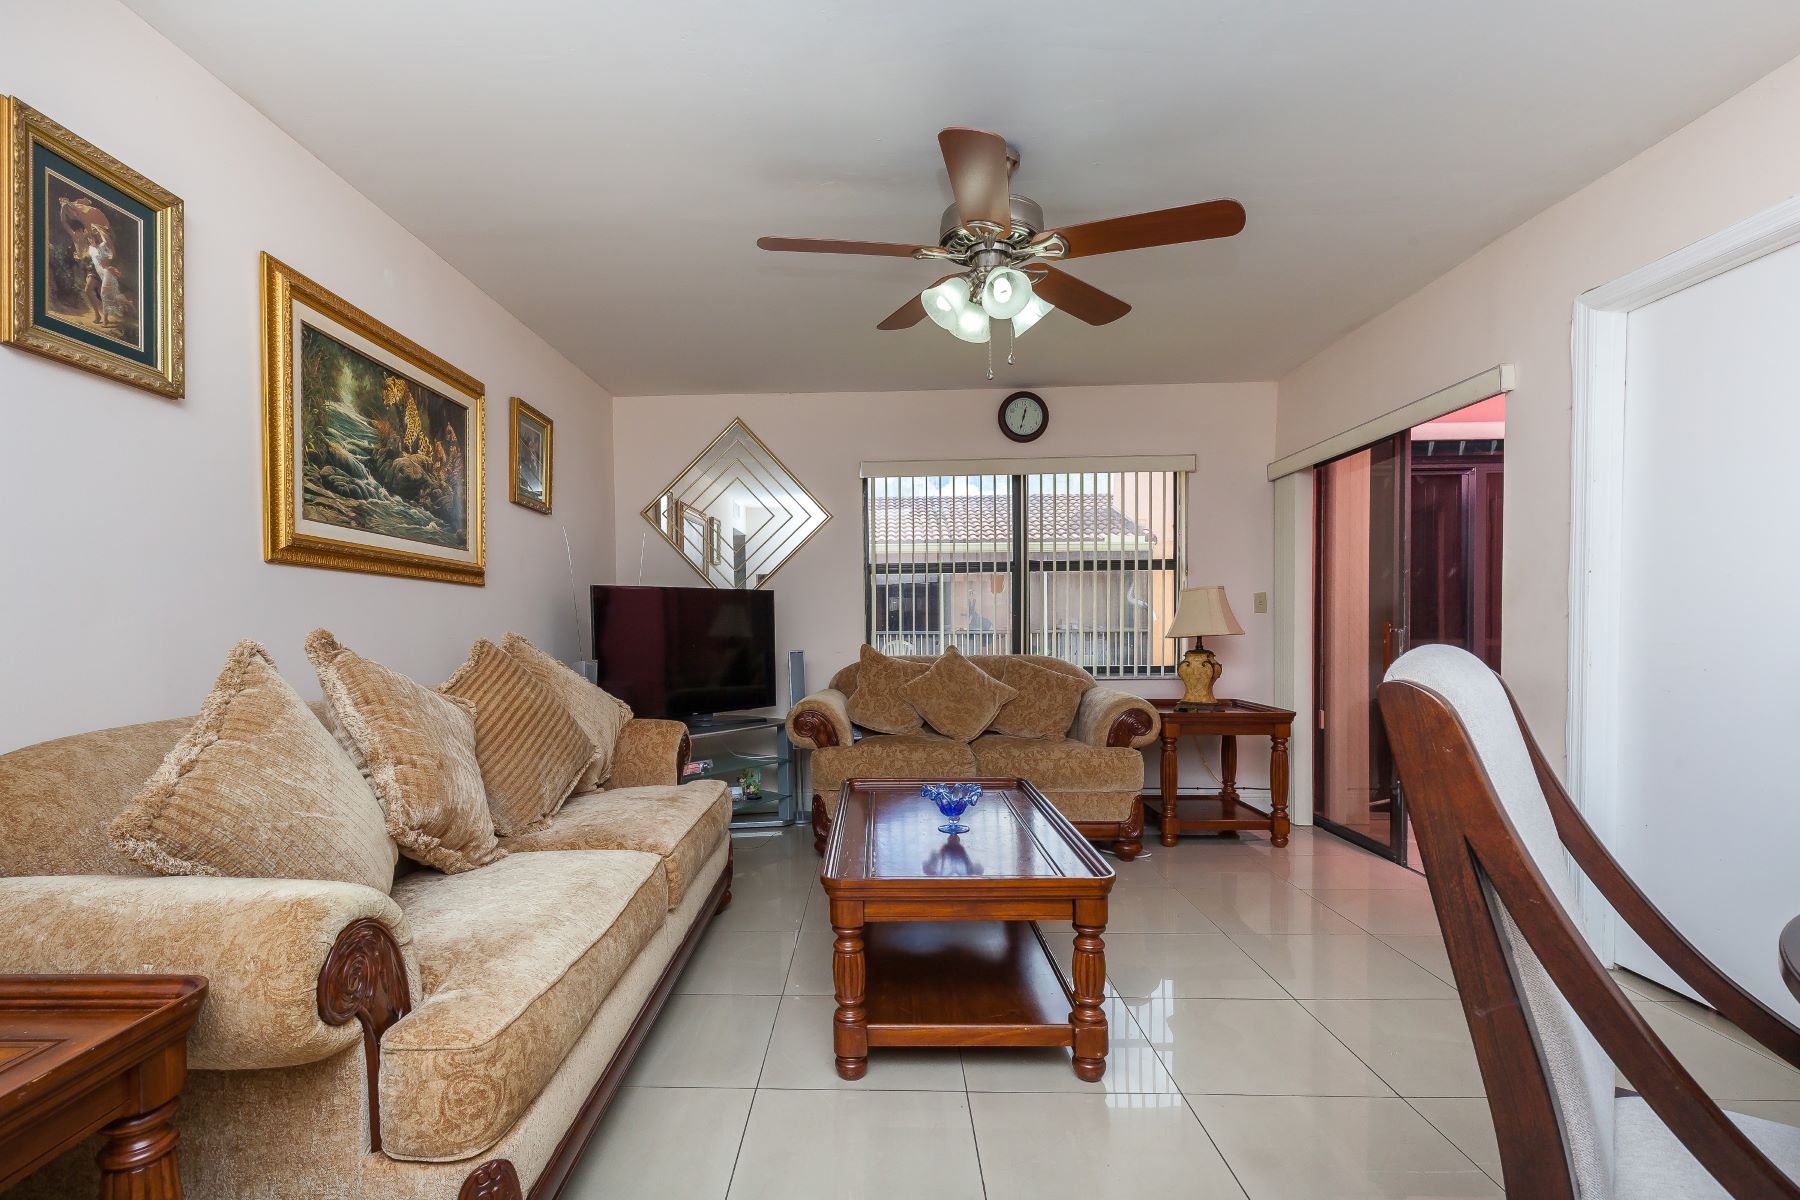 Condominium for Sale at 2740 W 63rd Pl 2740 W 63rd Pl 21-25 Hialeah, Florida 33016 United States